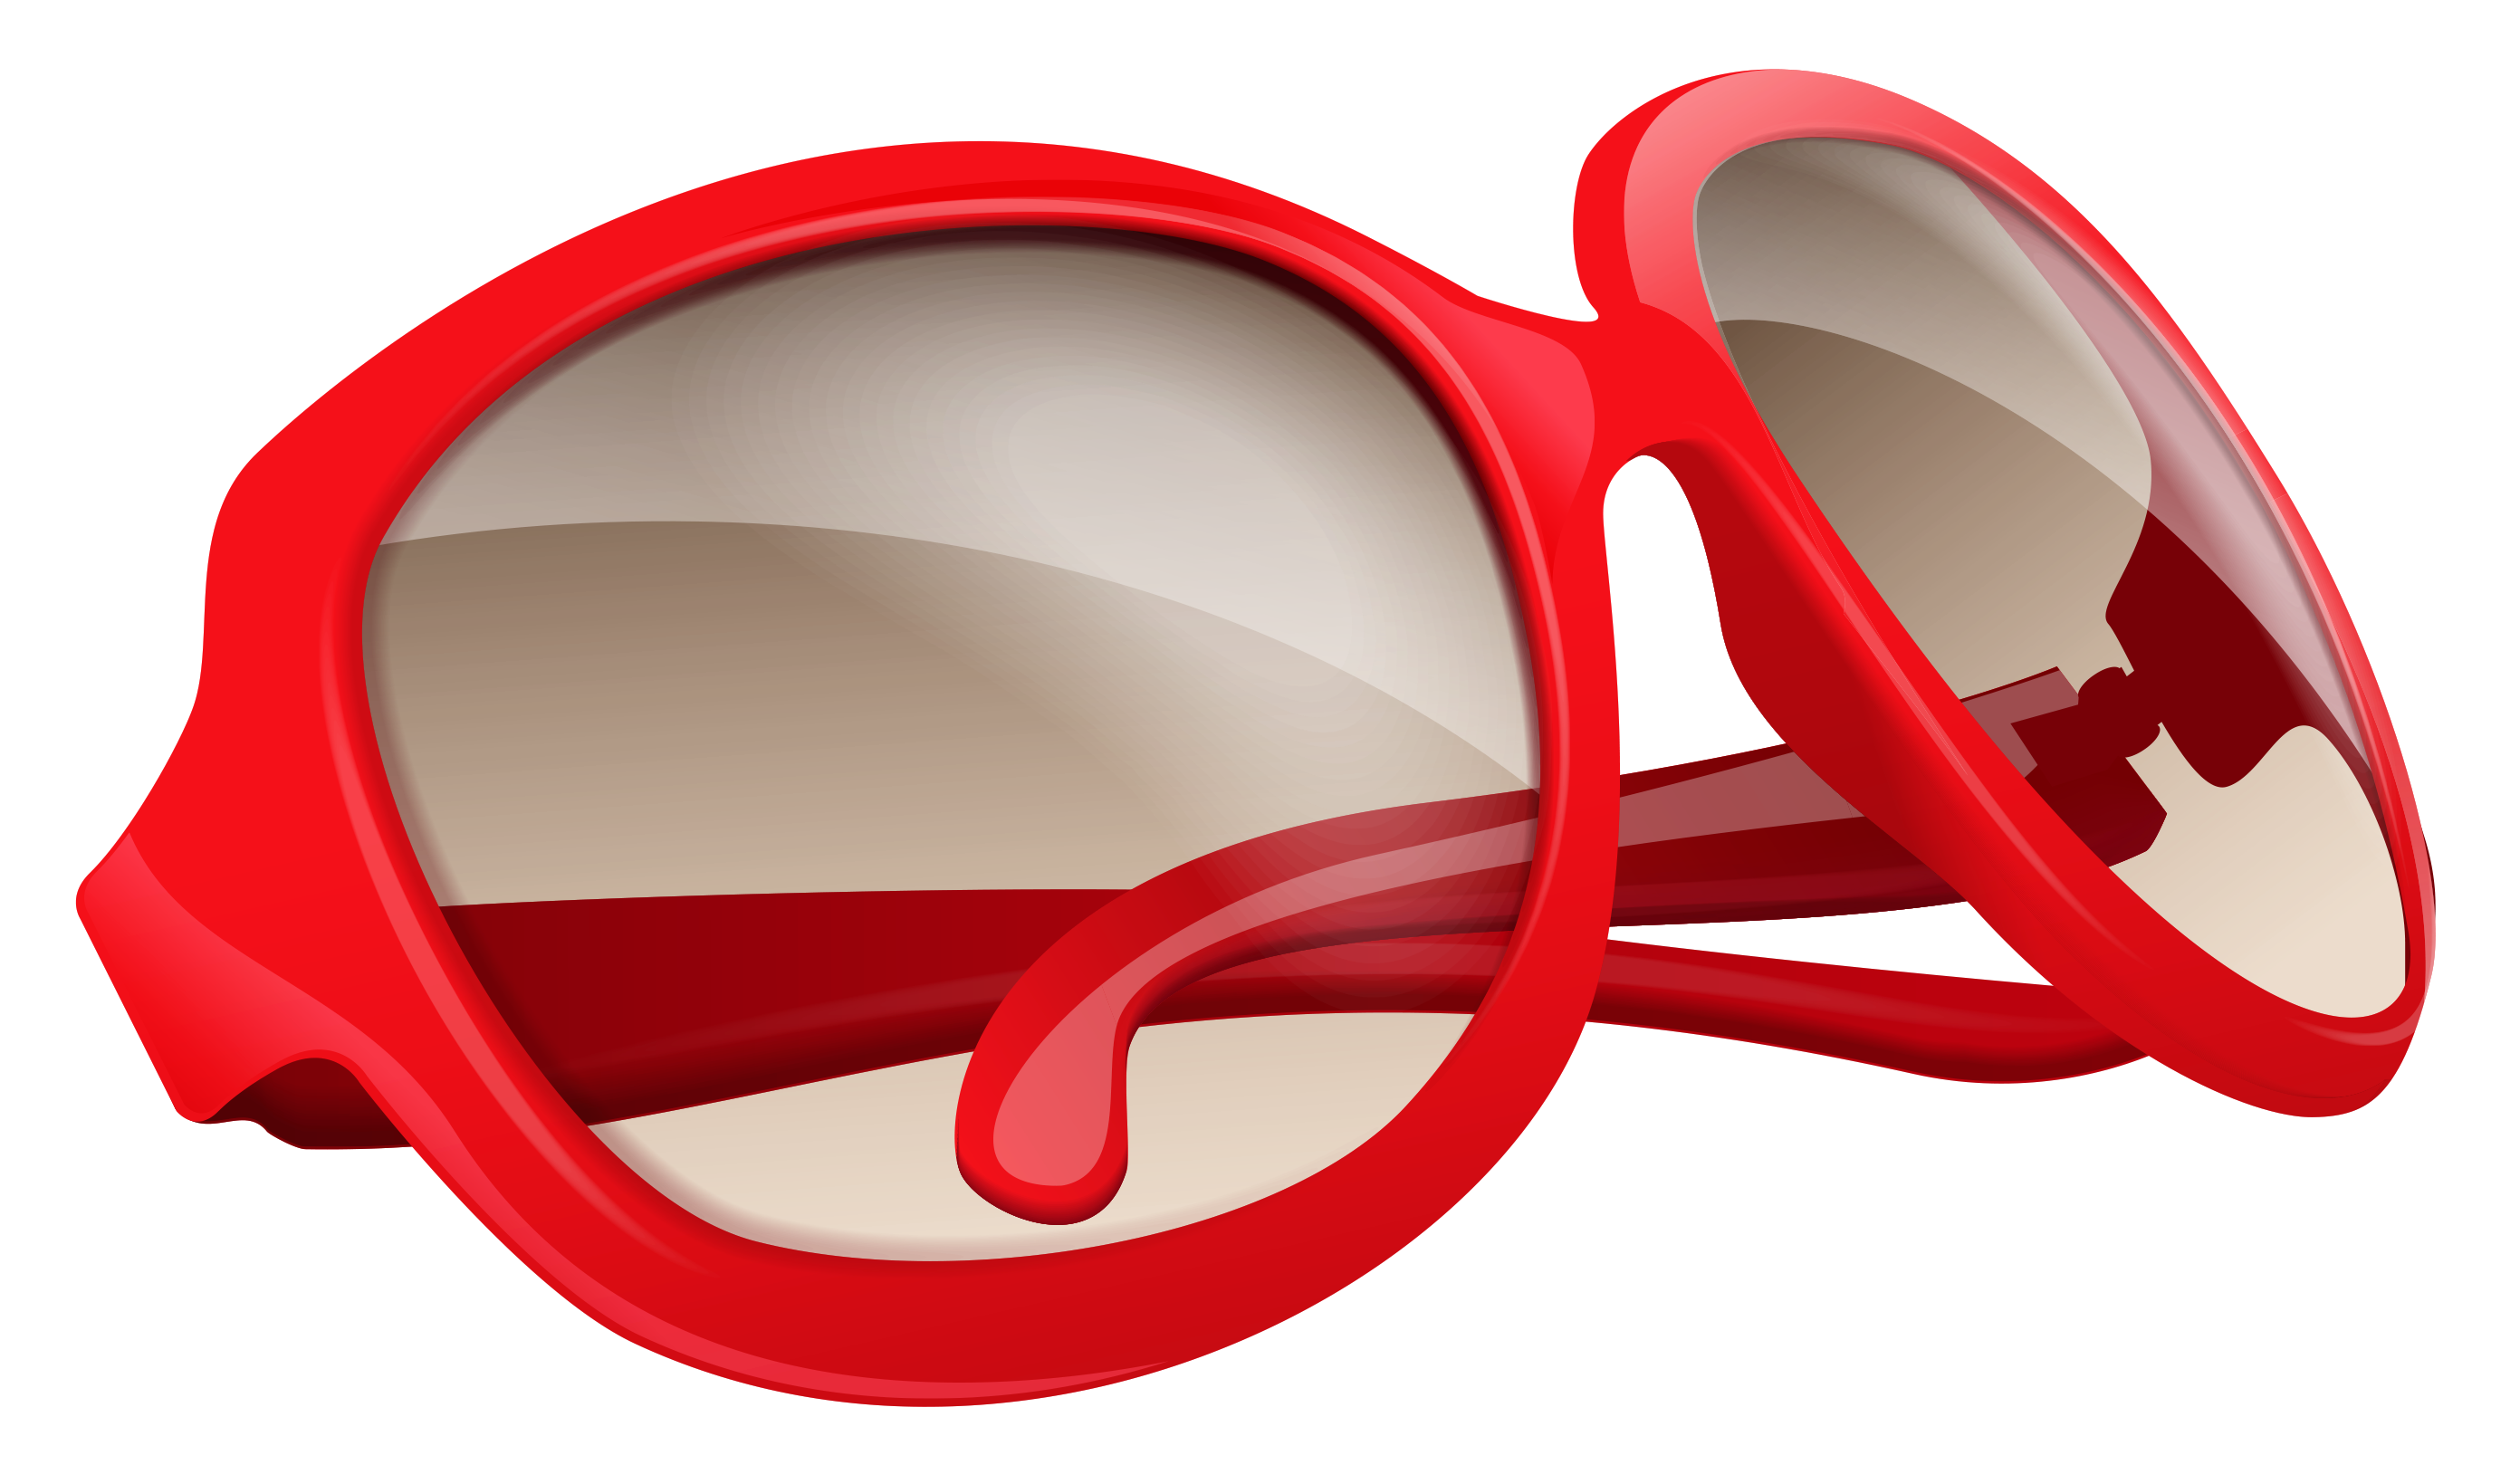 Sunglasses png image gallery. Vision clipart red